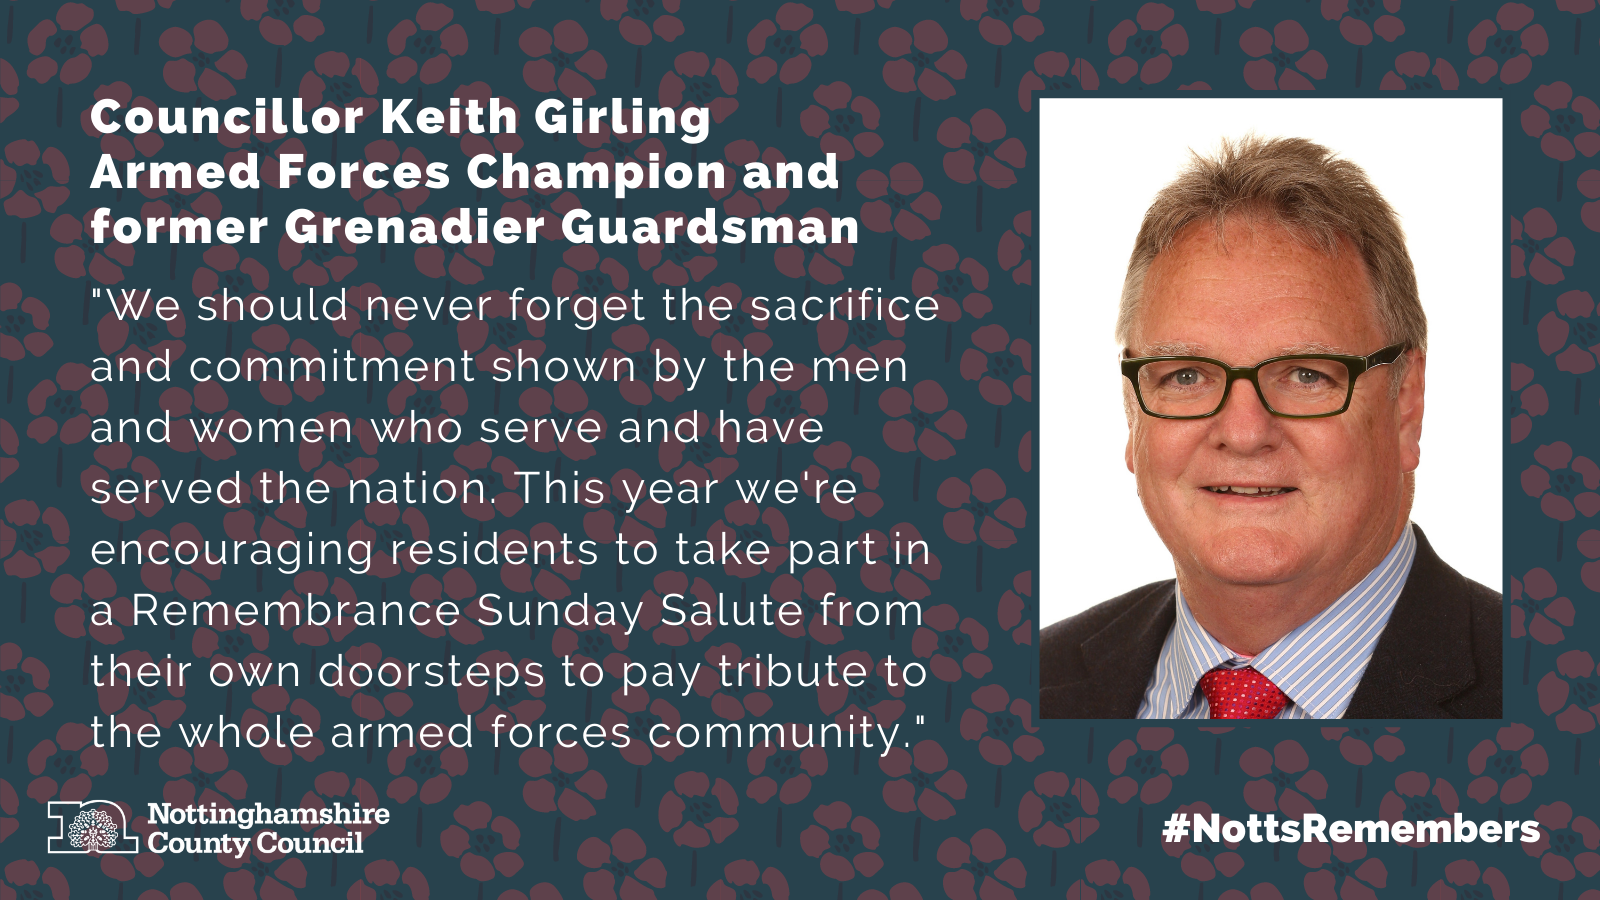 Cllr Girling image and quote for remembrance day